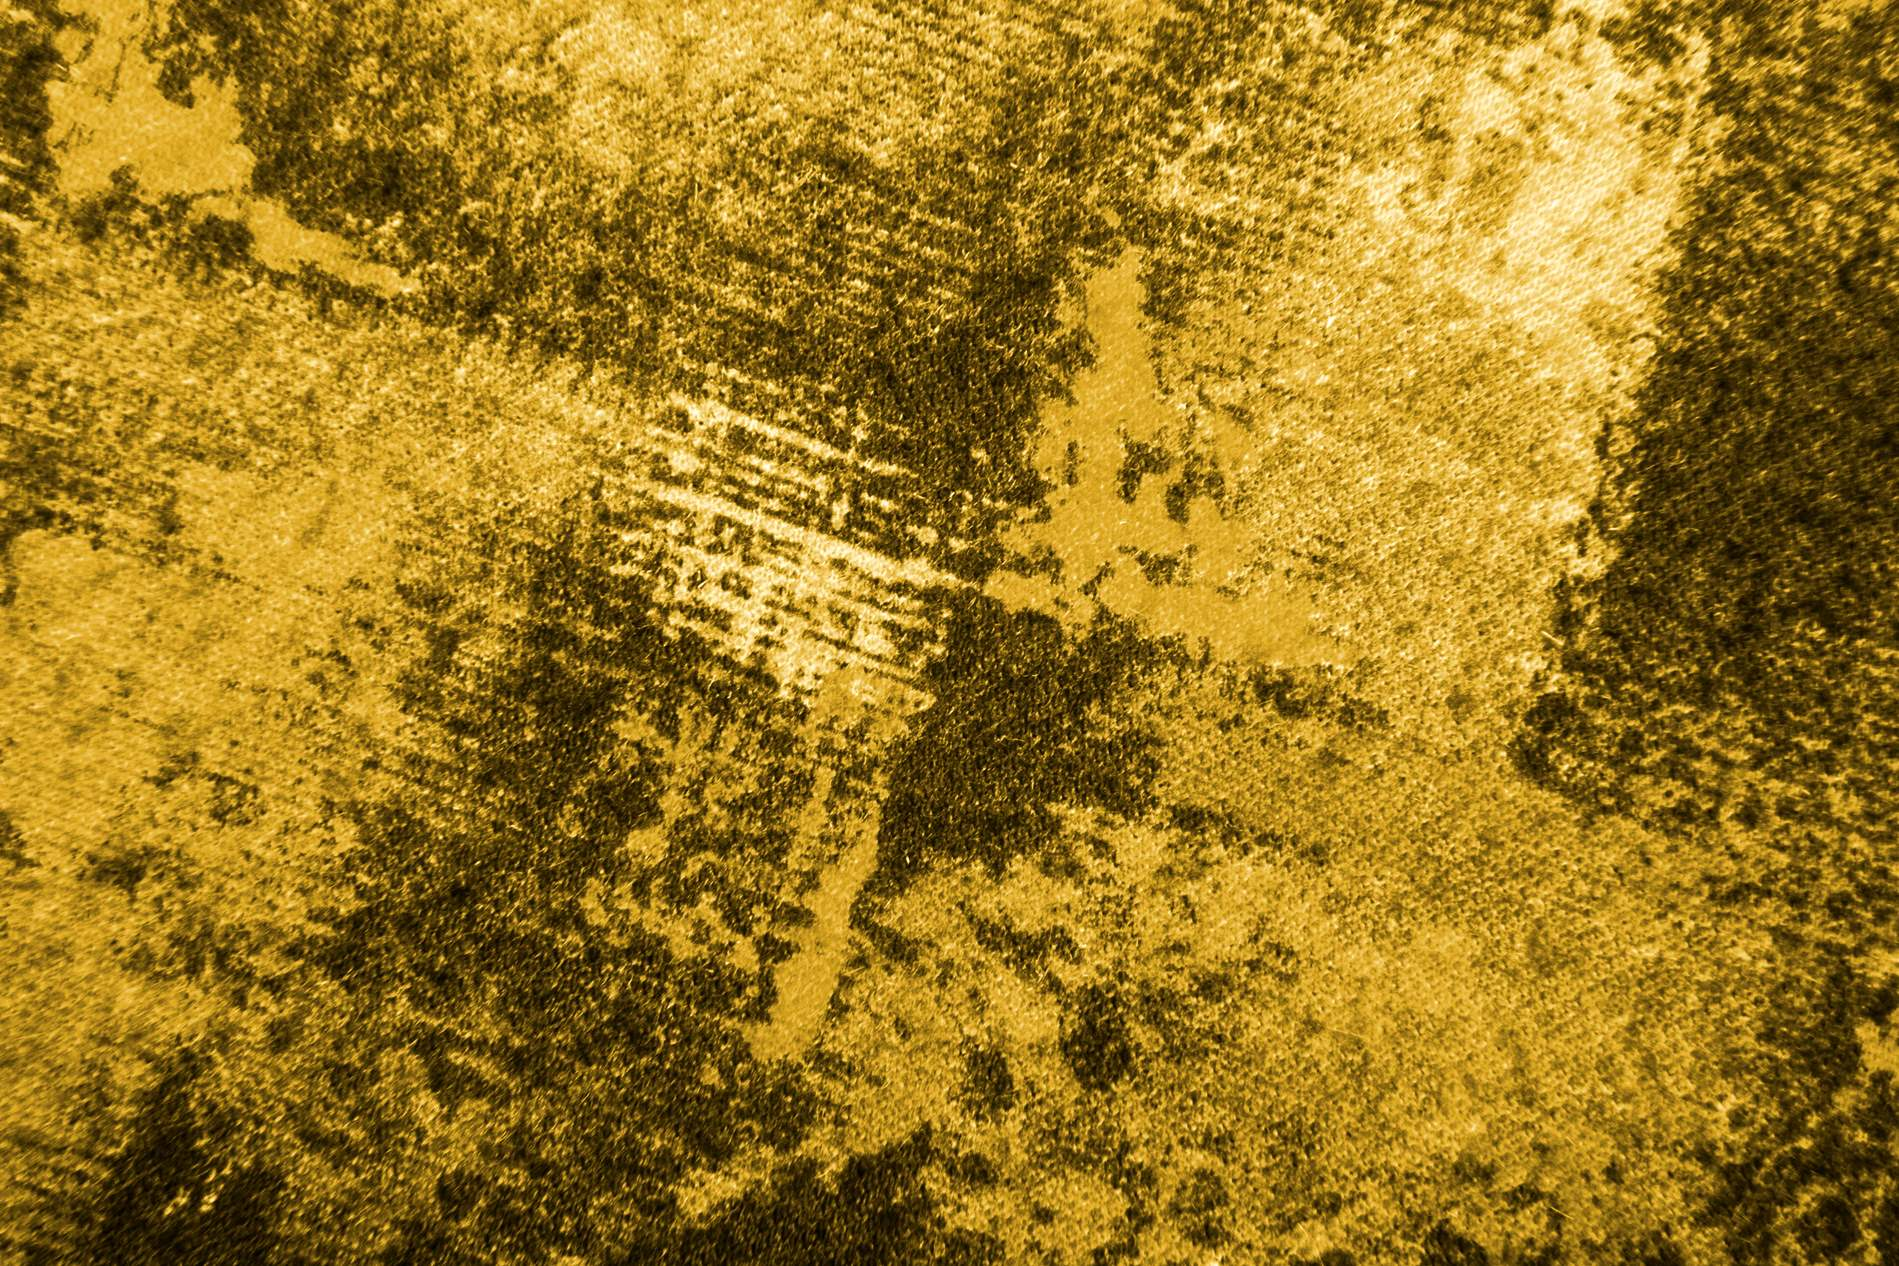 Pics photos brown fabric texture high resolution - Yellow Army Camouflage Muslim Fabric Texture Background